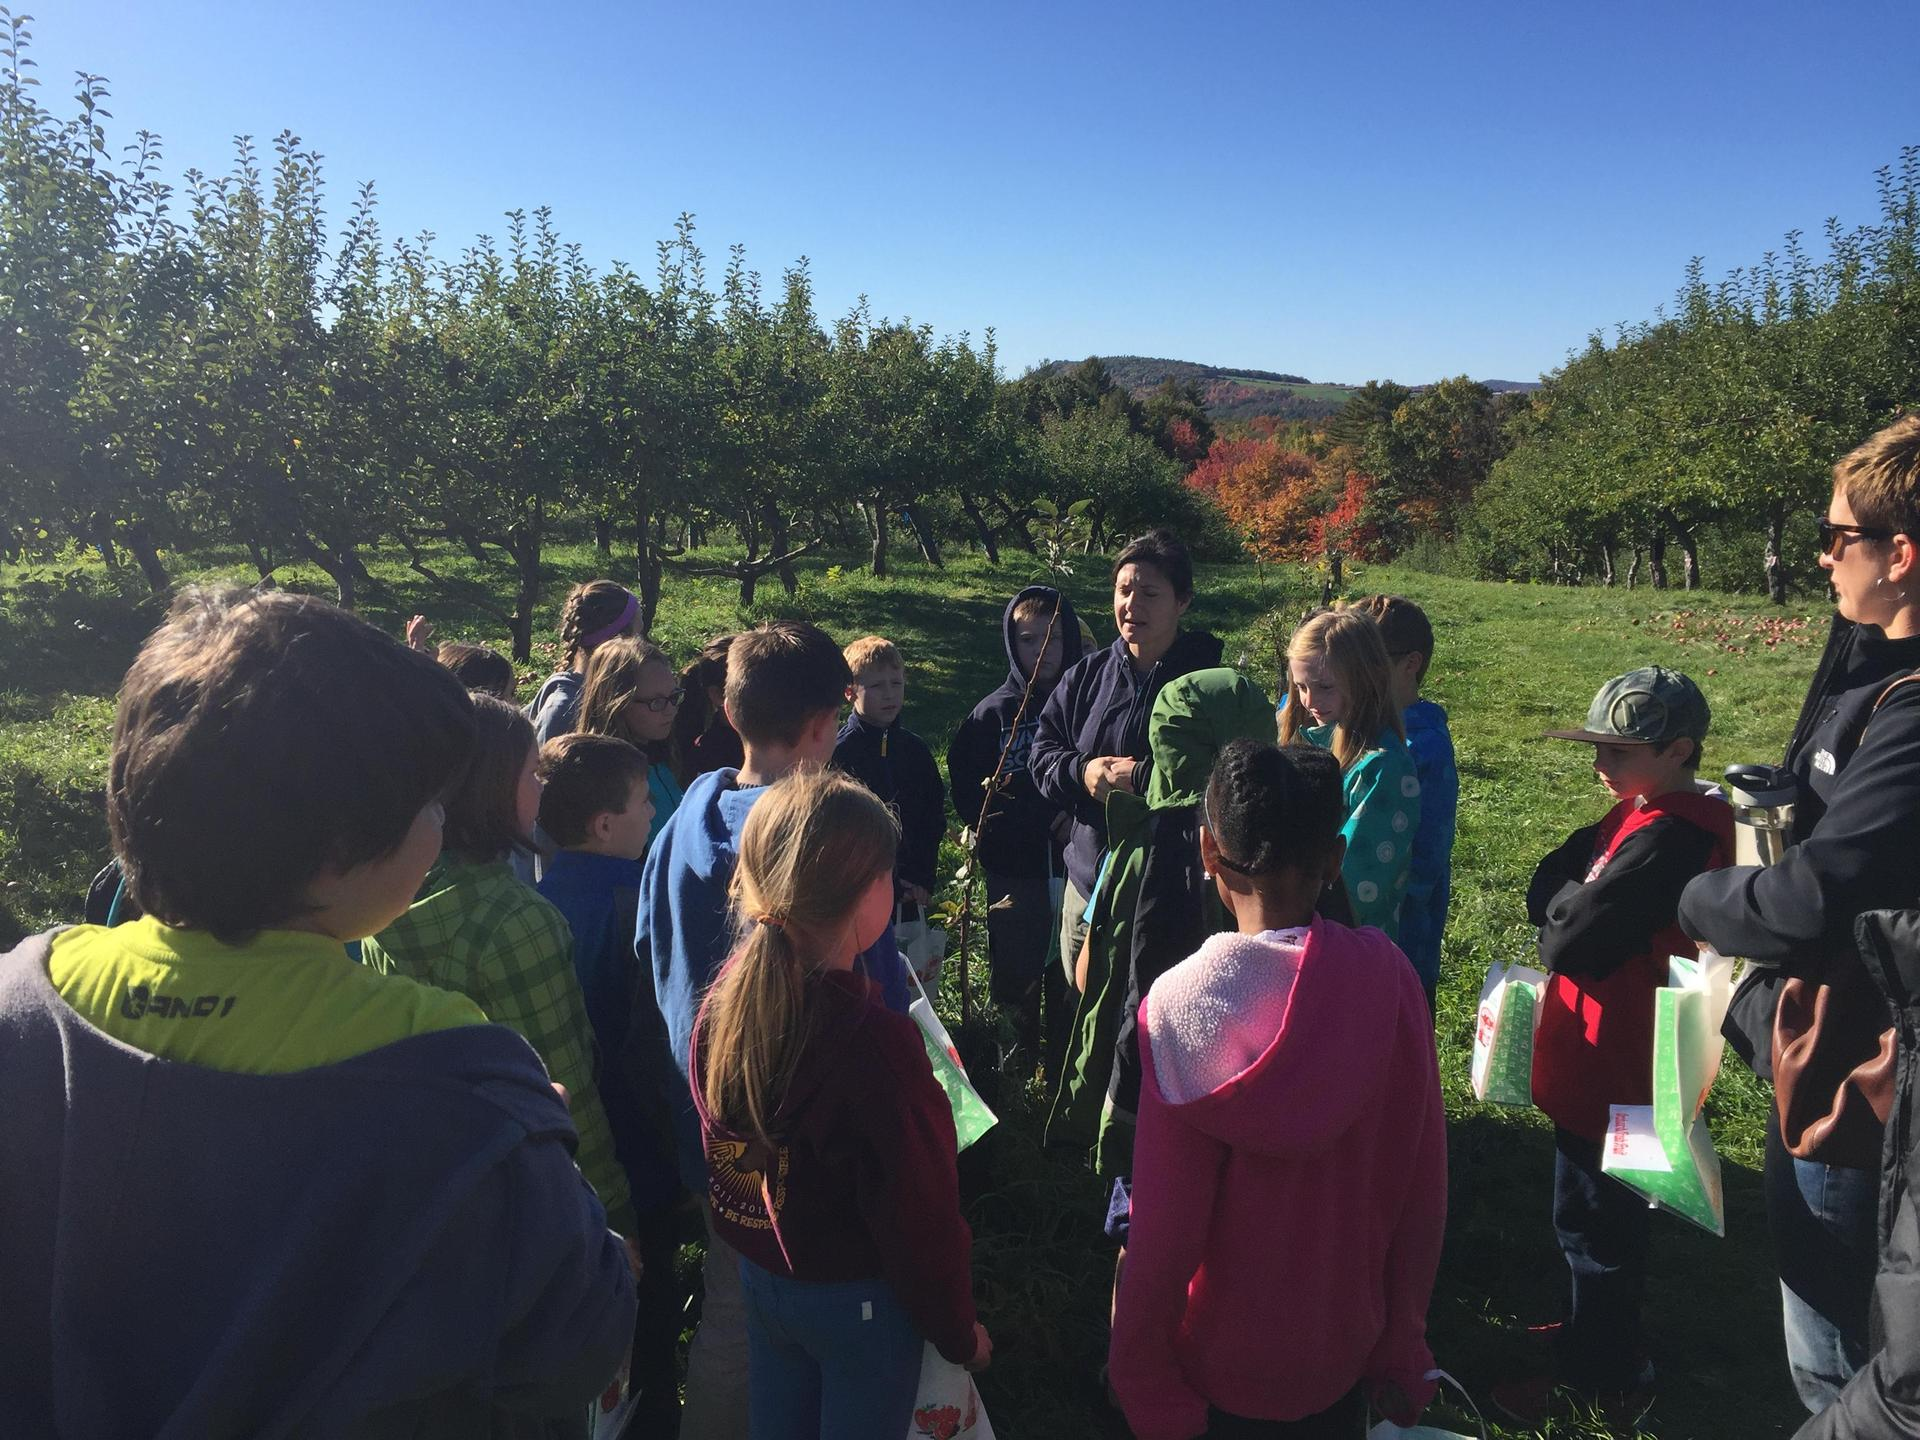 A field trip to Apple Acres